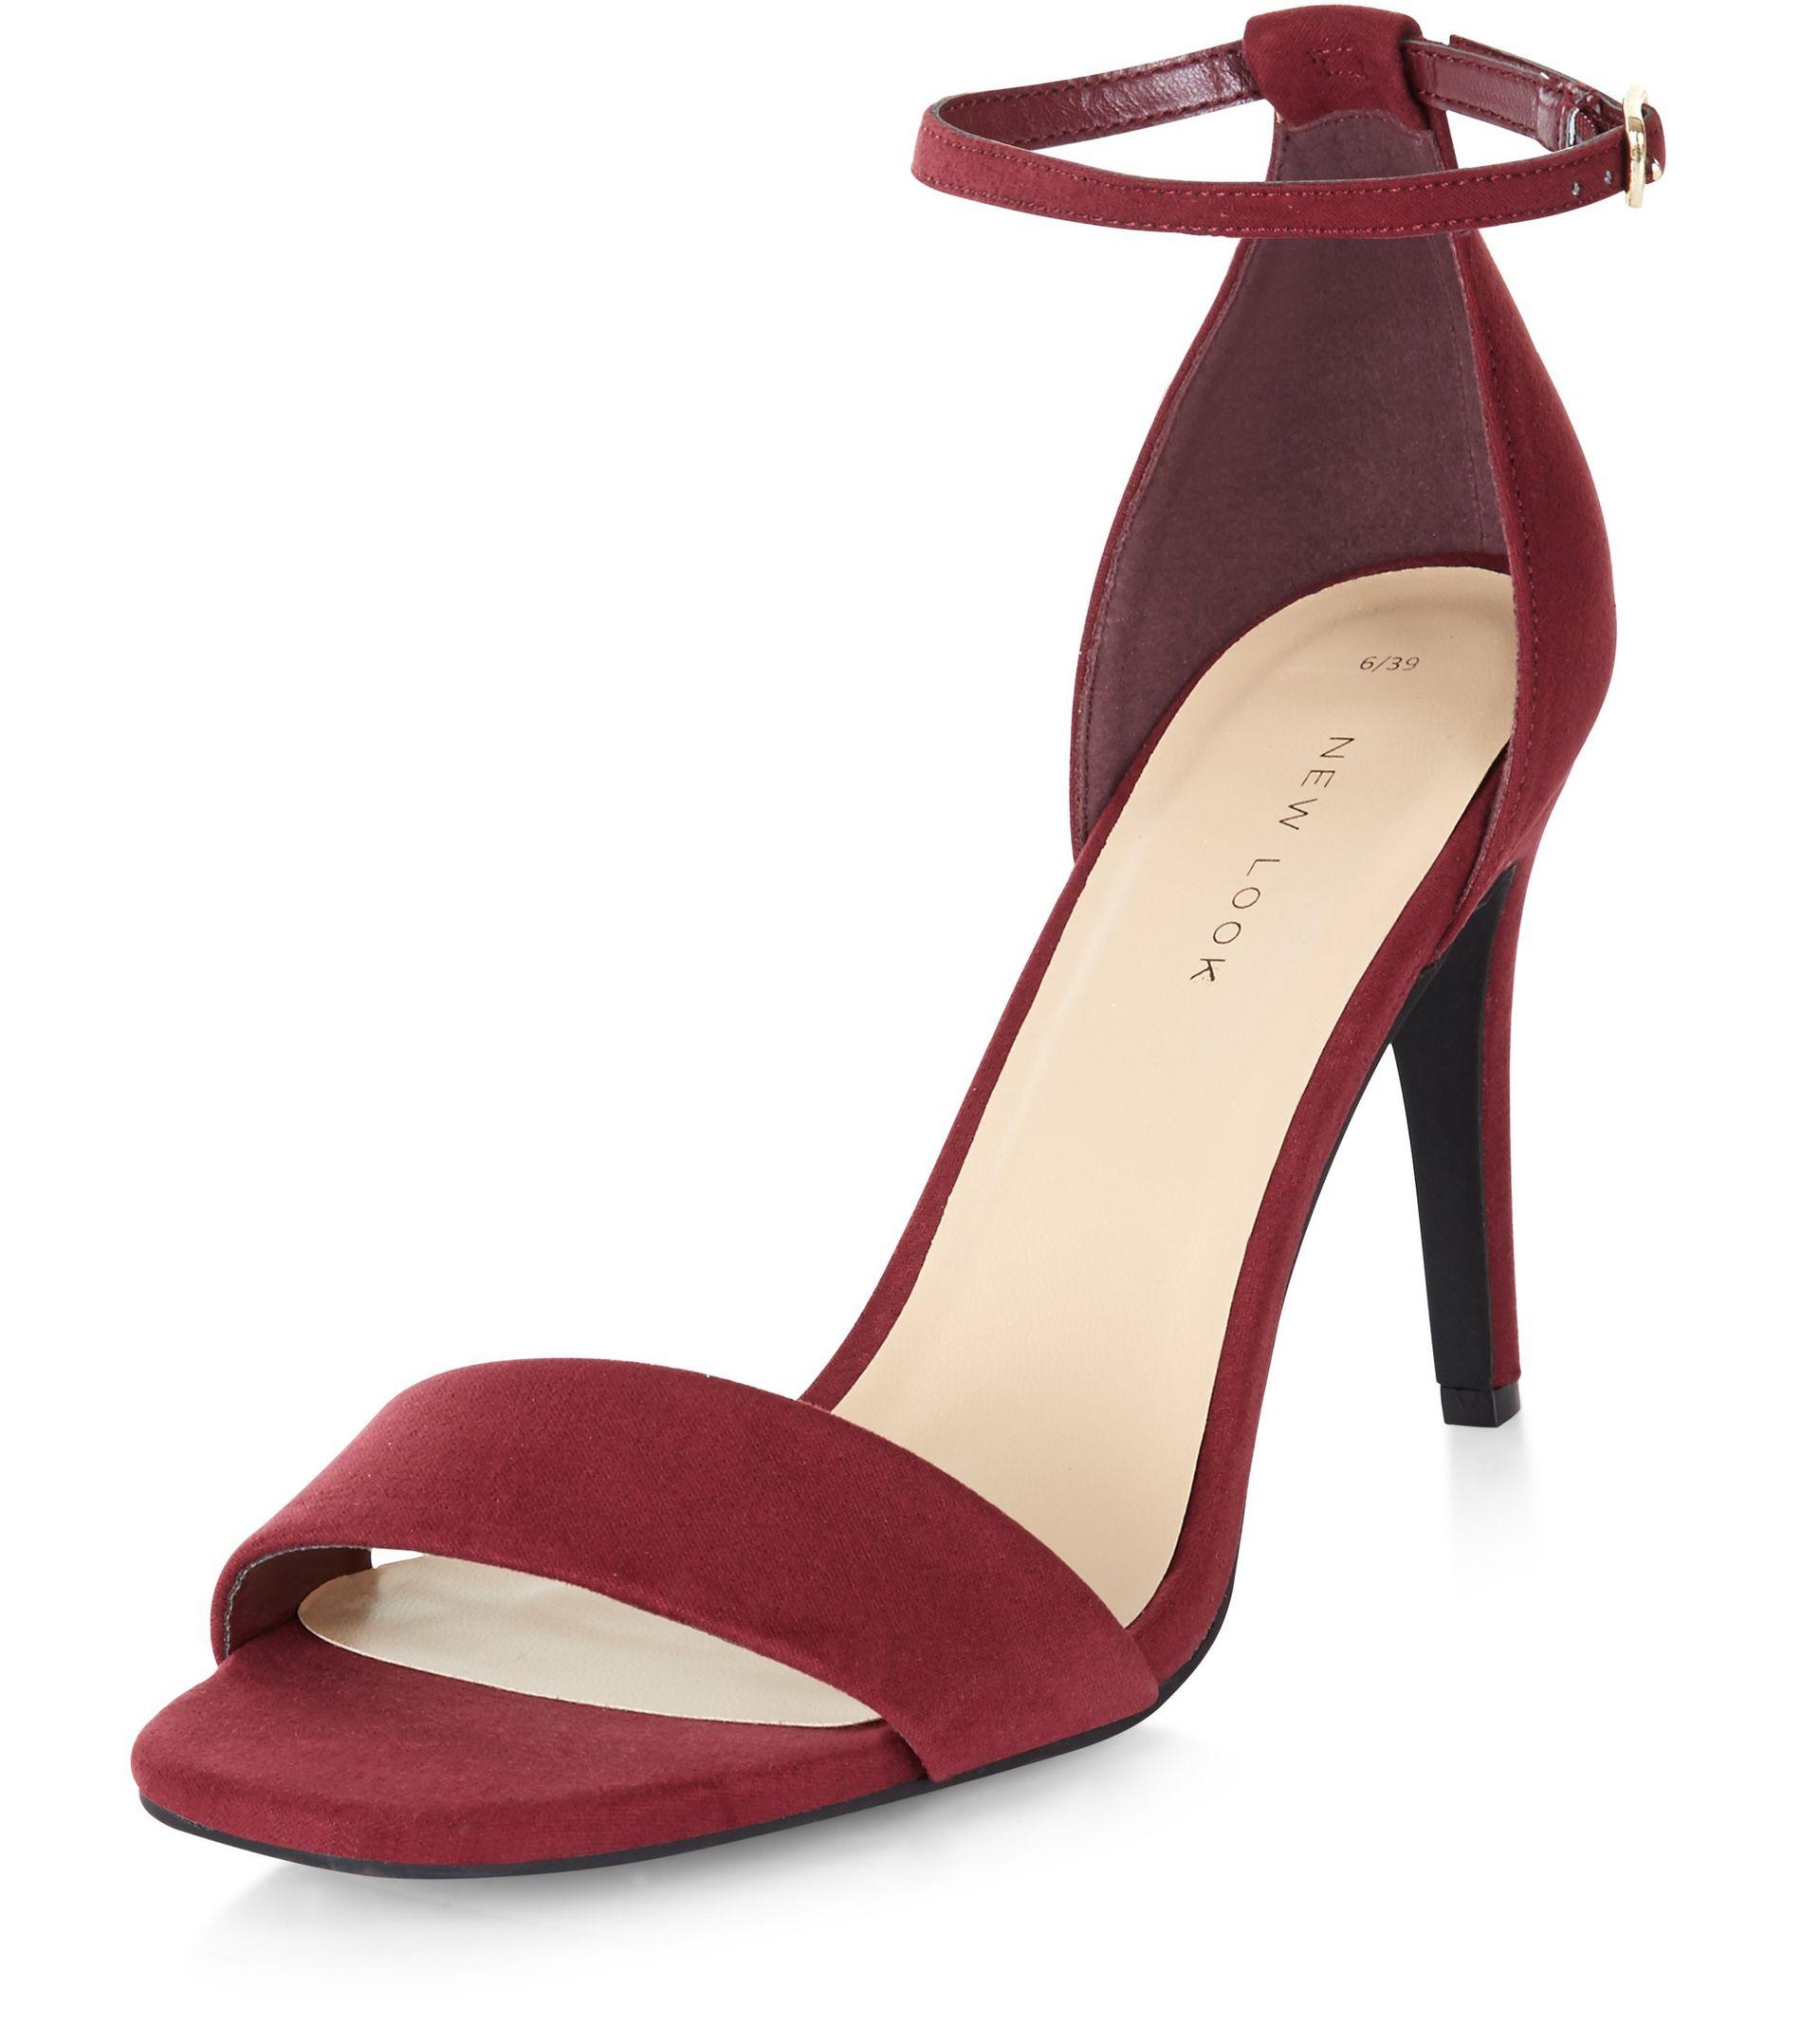 5e036ae5d2d New Look Dark Red Suedette Ankle Strap Heeled Sandals in Red - Lyst